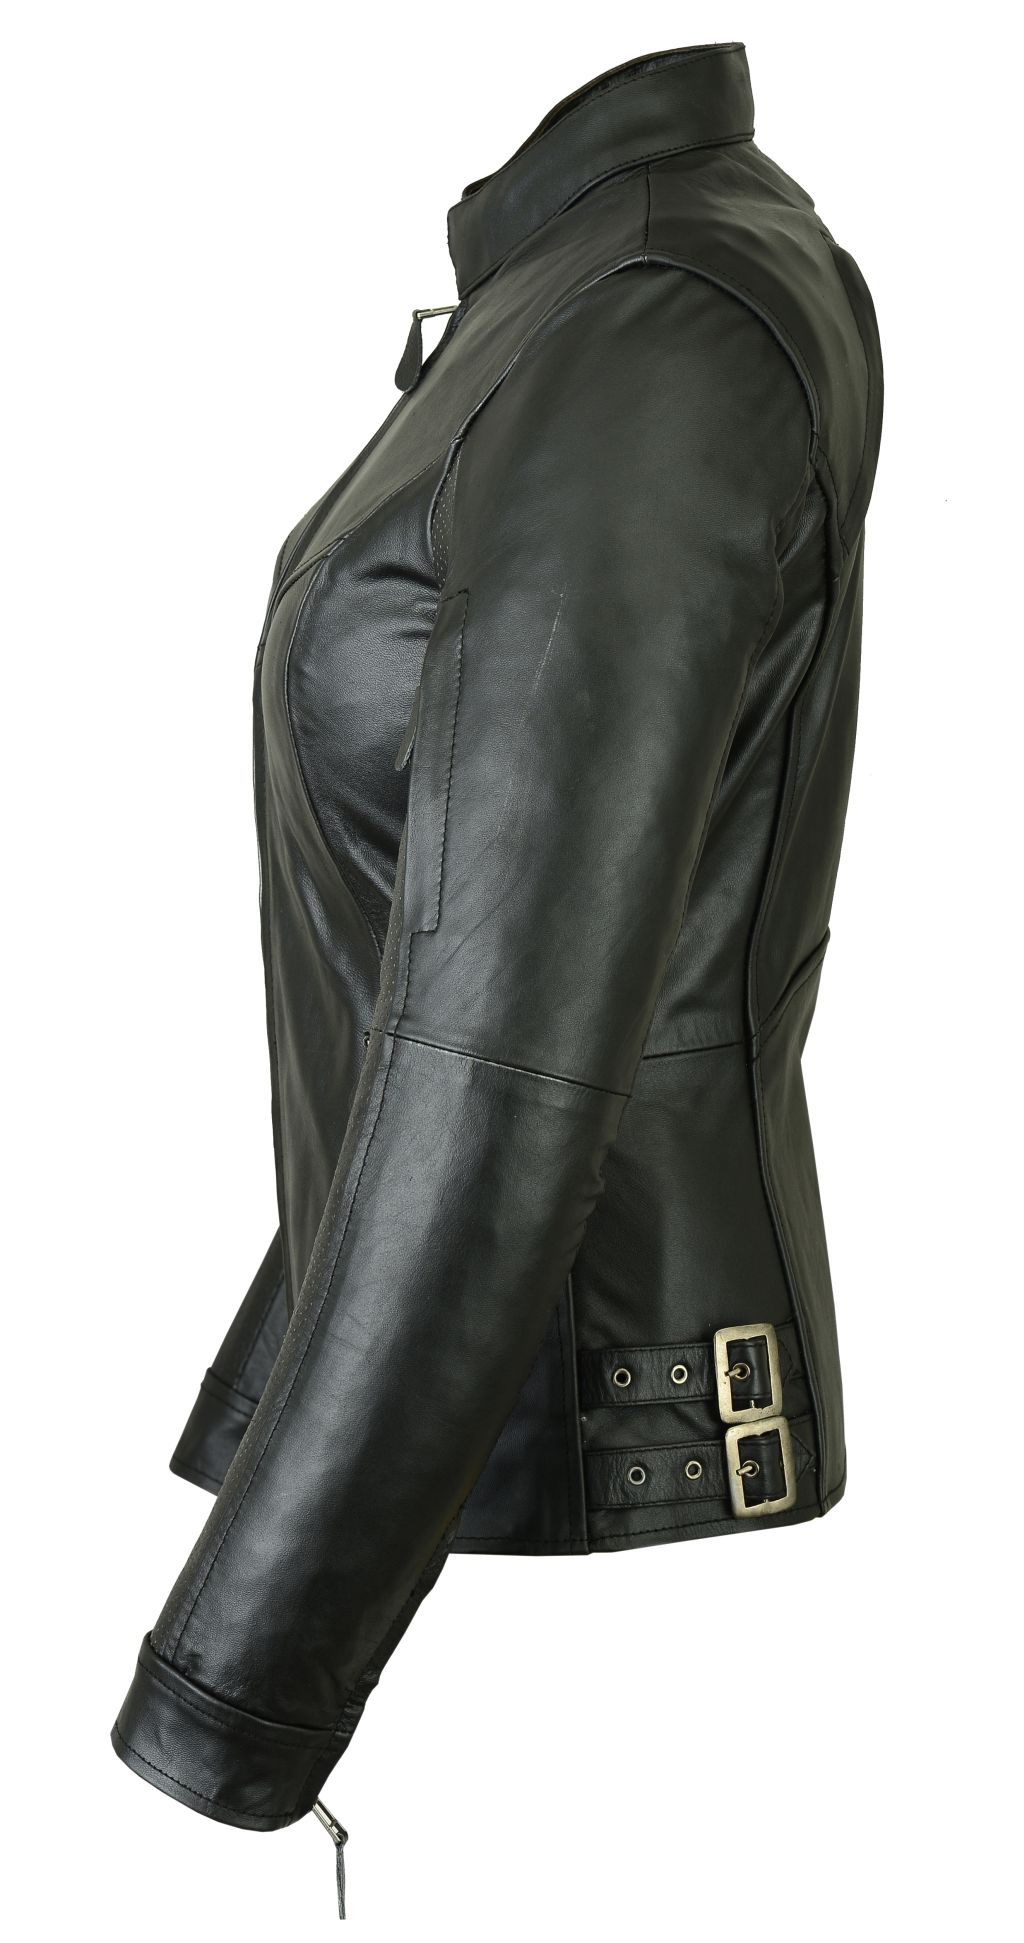 new products ec8f3 fc716 Bangla Damen Lederjacke Leder Jacke Bikerstil schwarz S M L XL